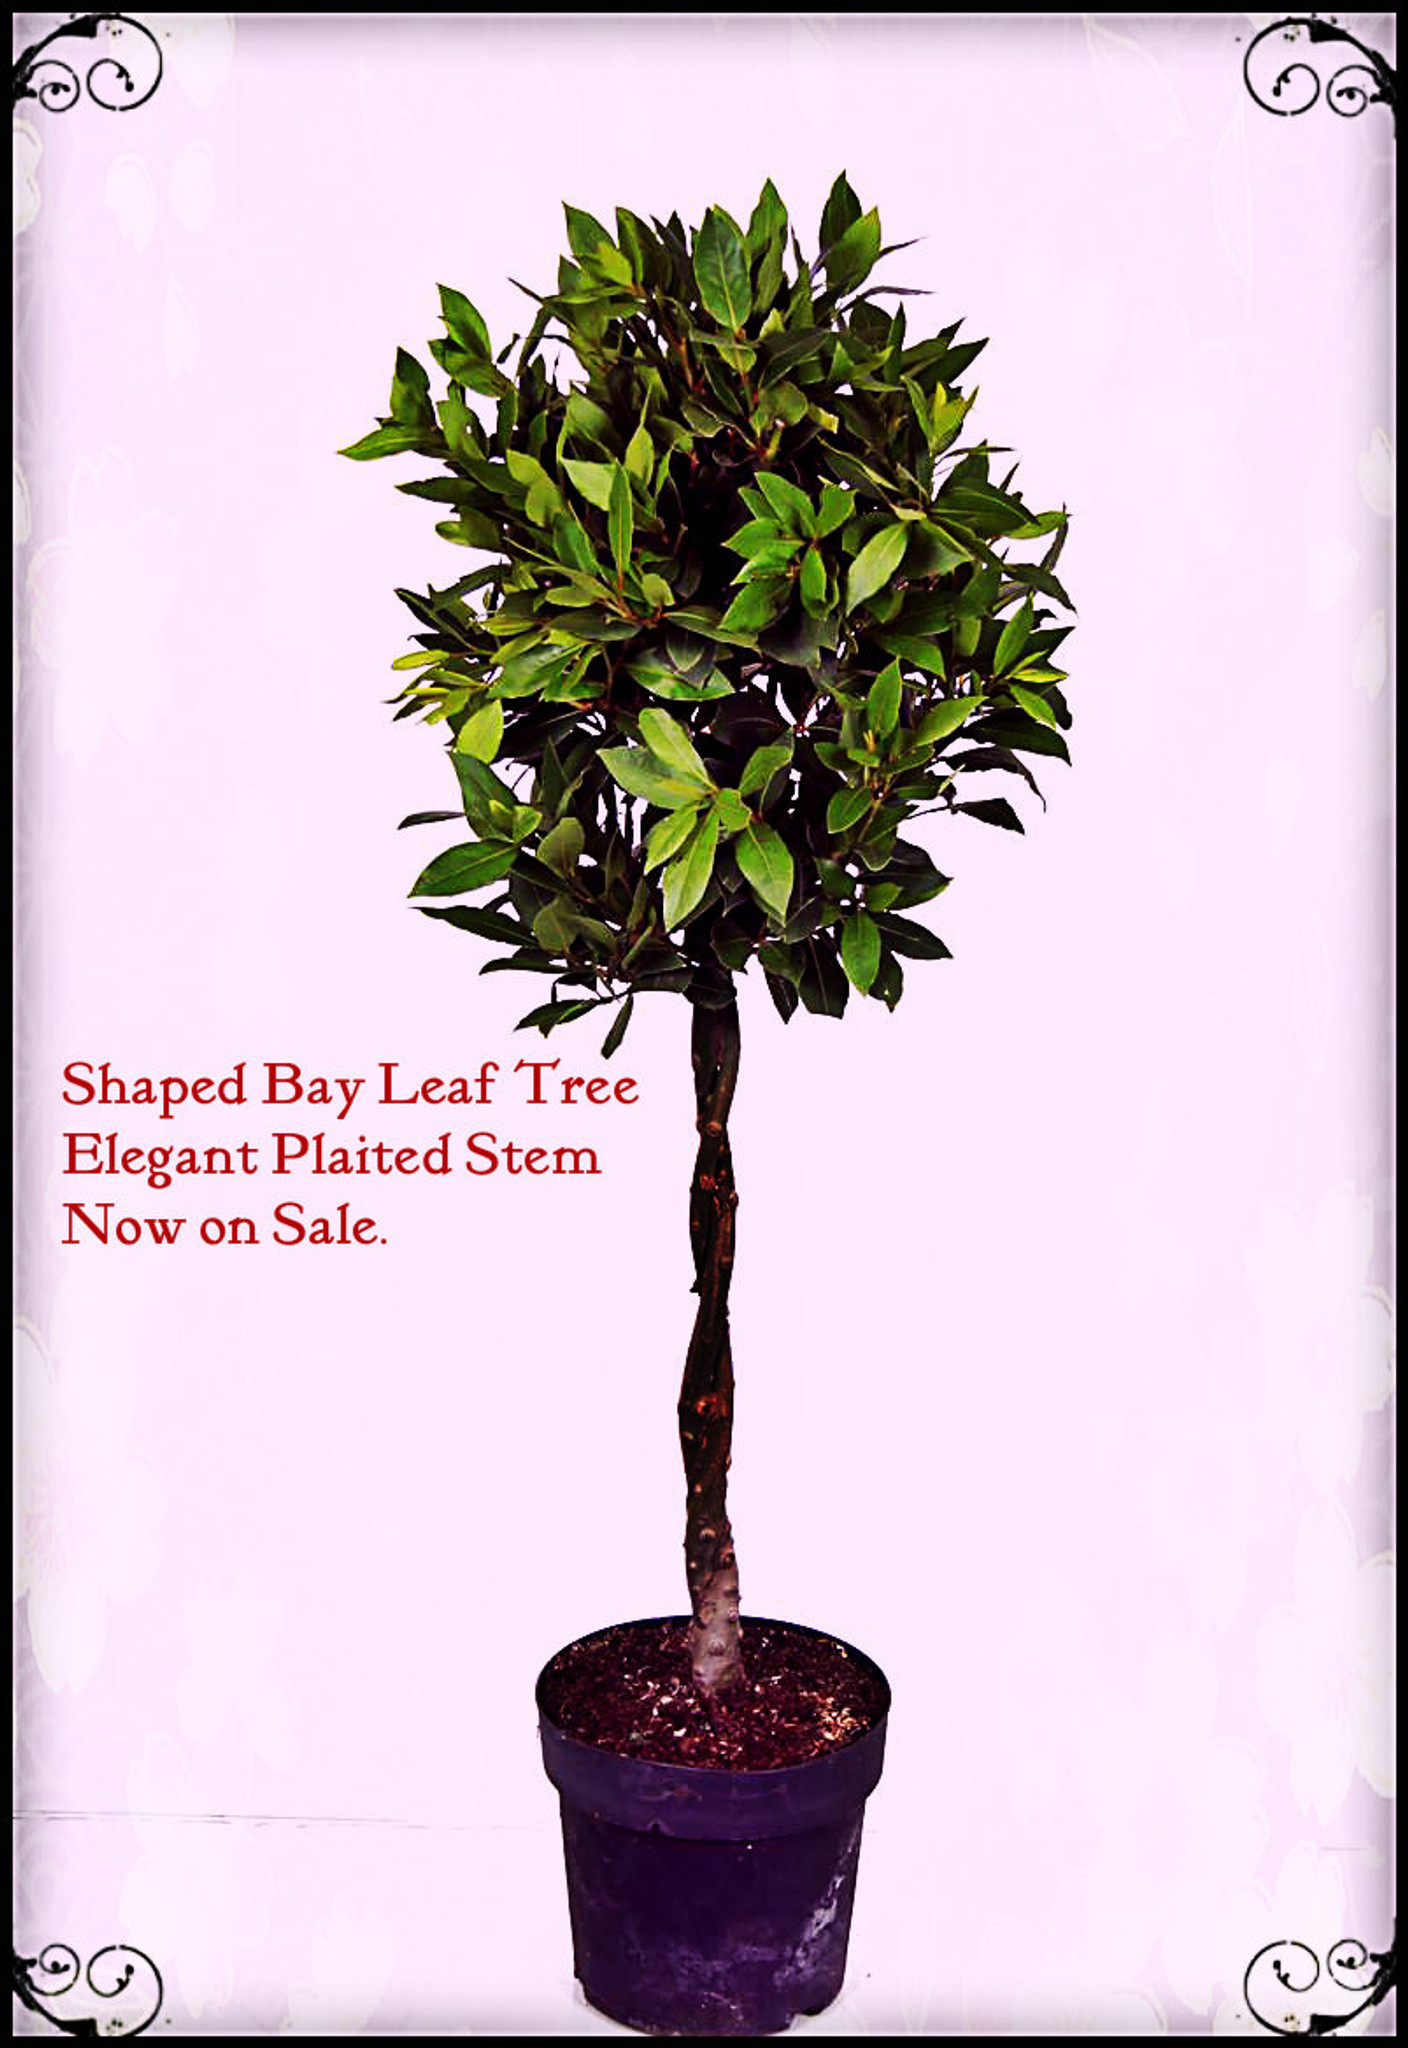 Laurus nobilis Standard Bay Tree - 1 tree Shaped with Plaited Stem - Height 100cm  ( 3ft+)